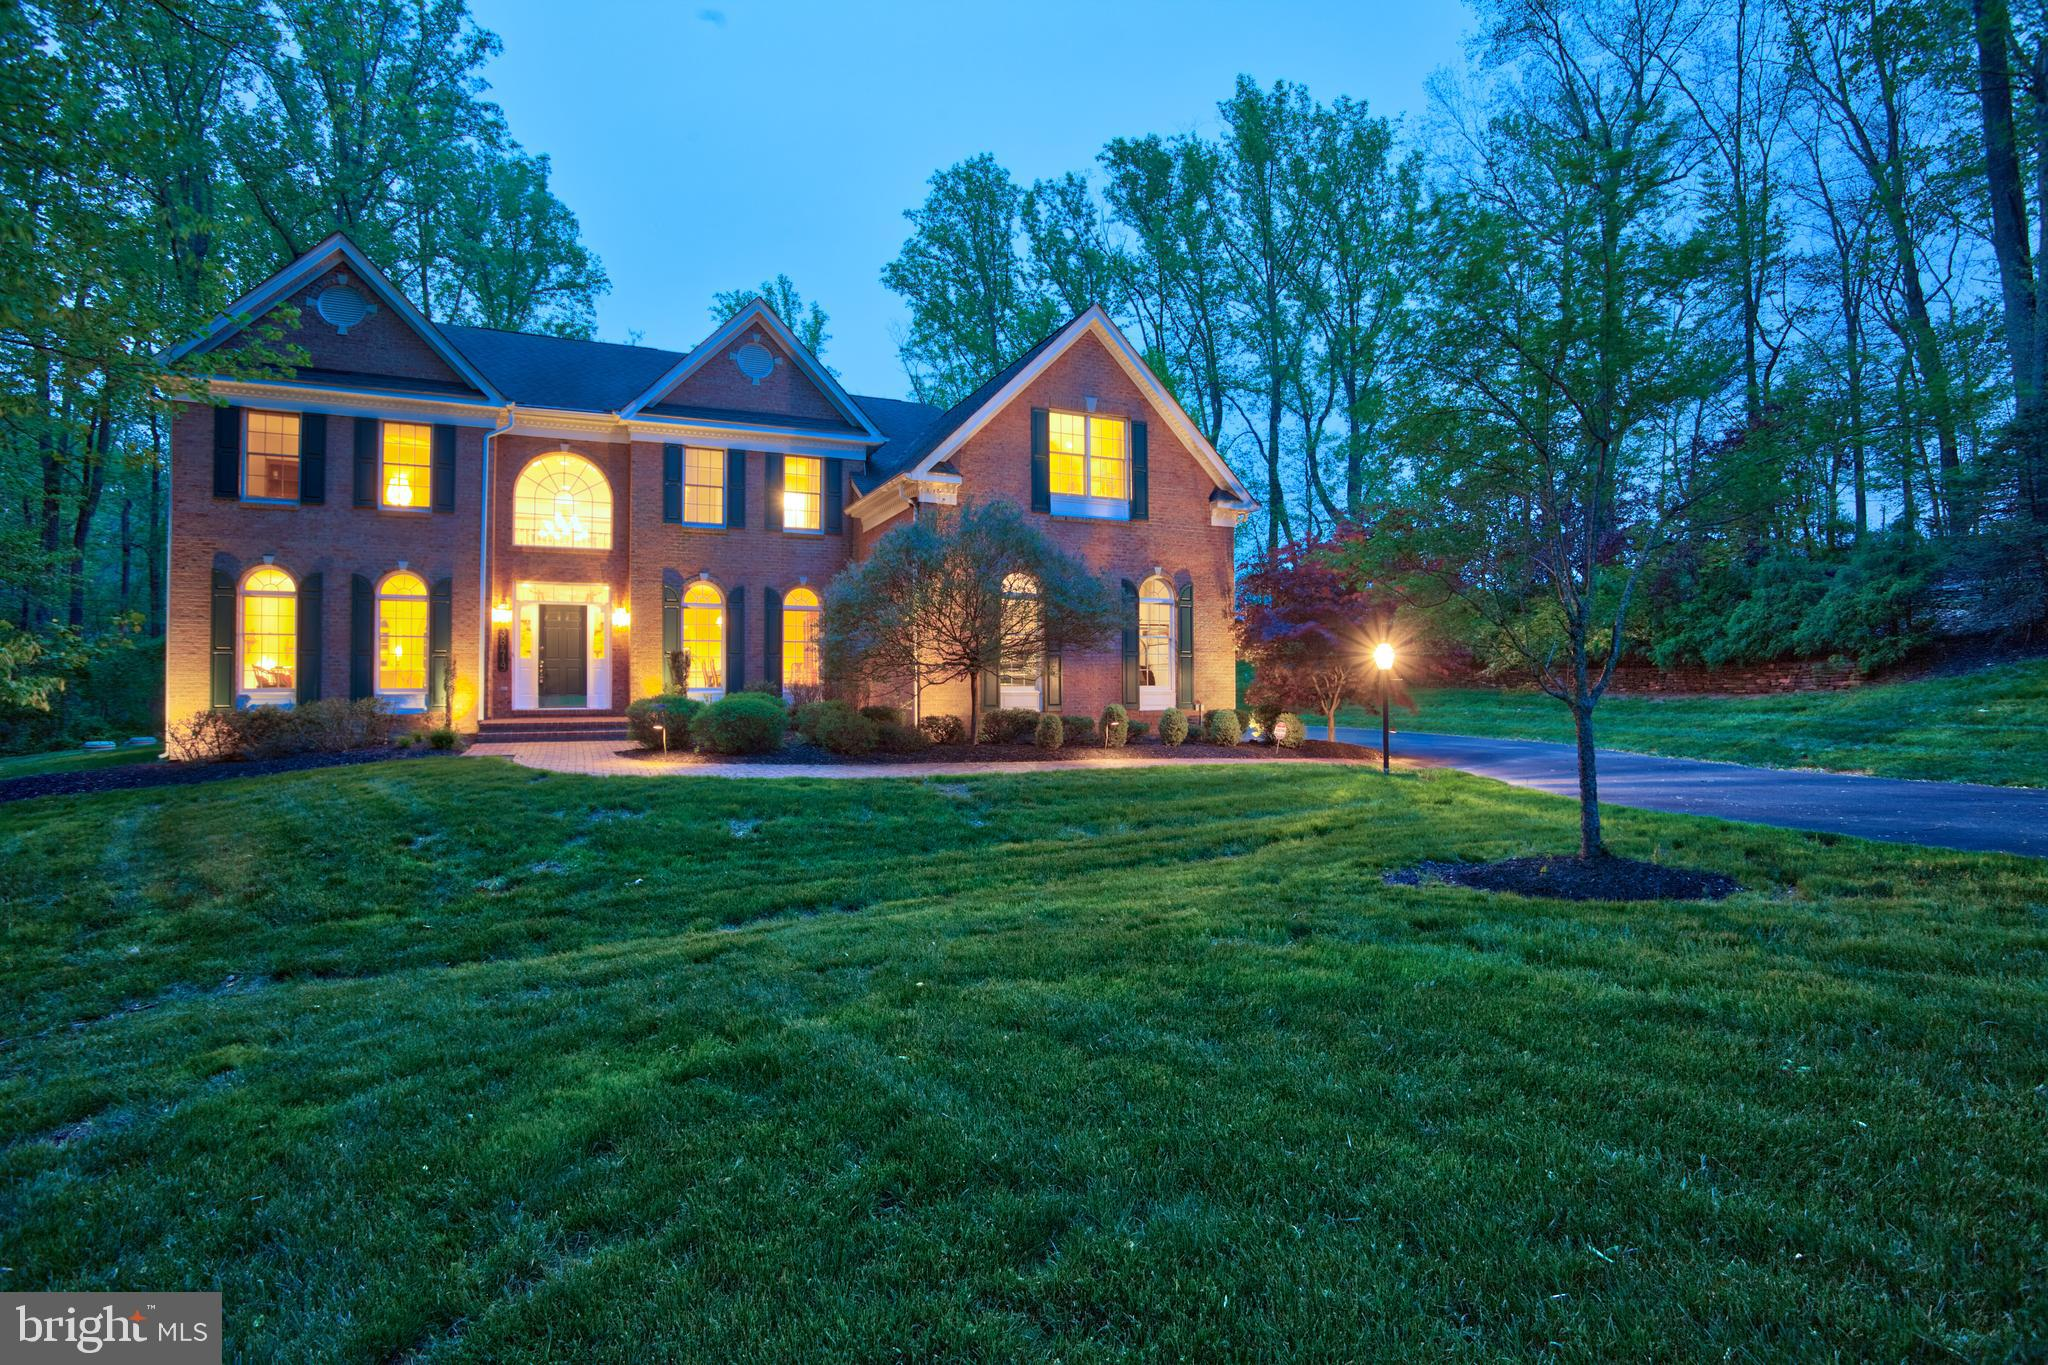 38419 WOODED HOLLOW DRIVE, HAMILTON, VA 20158